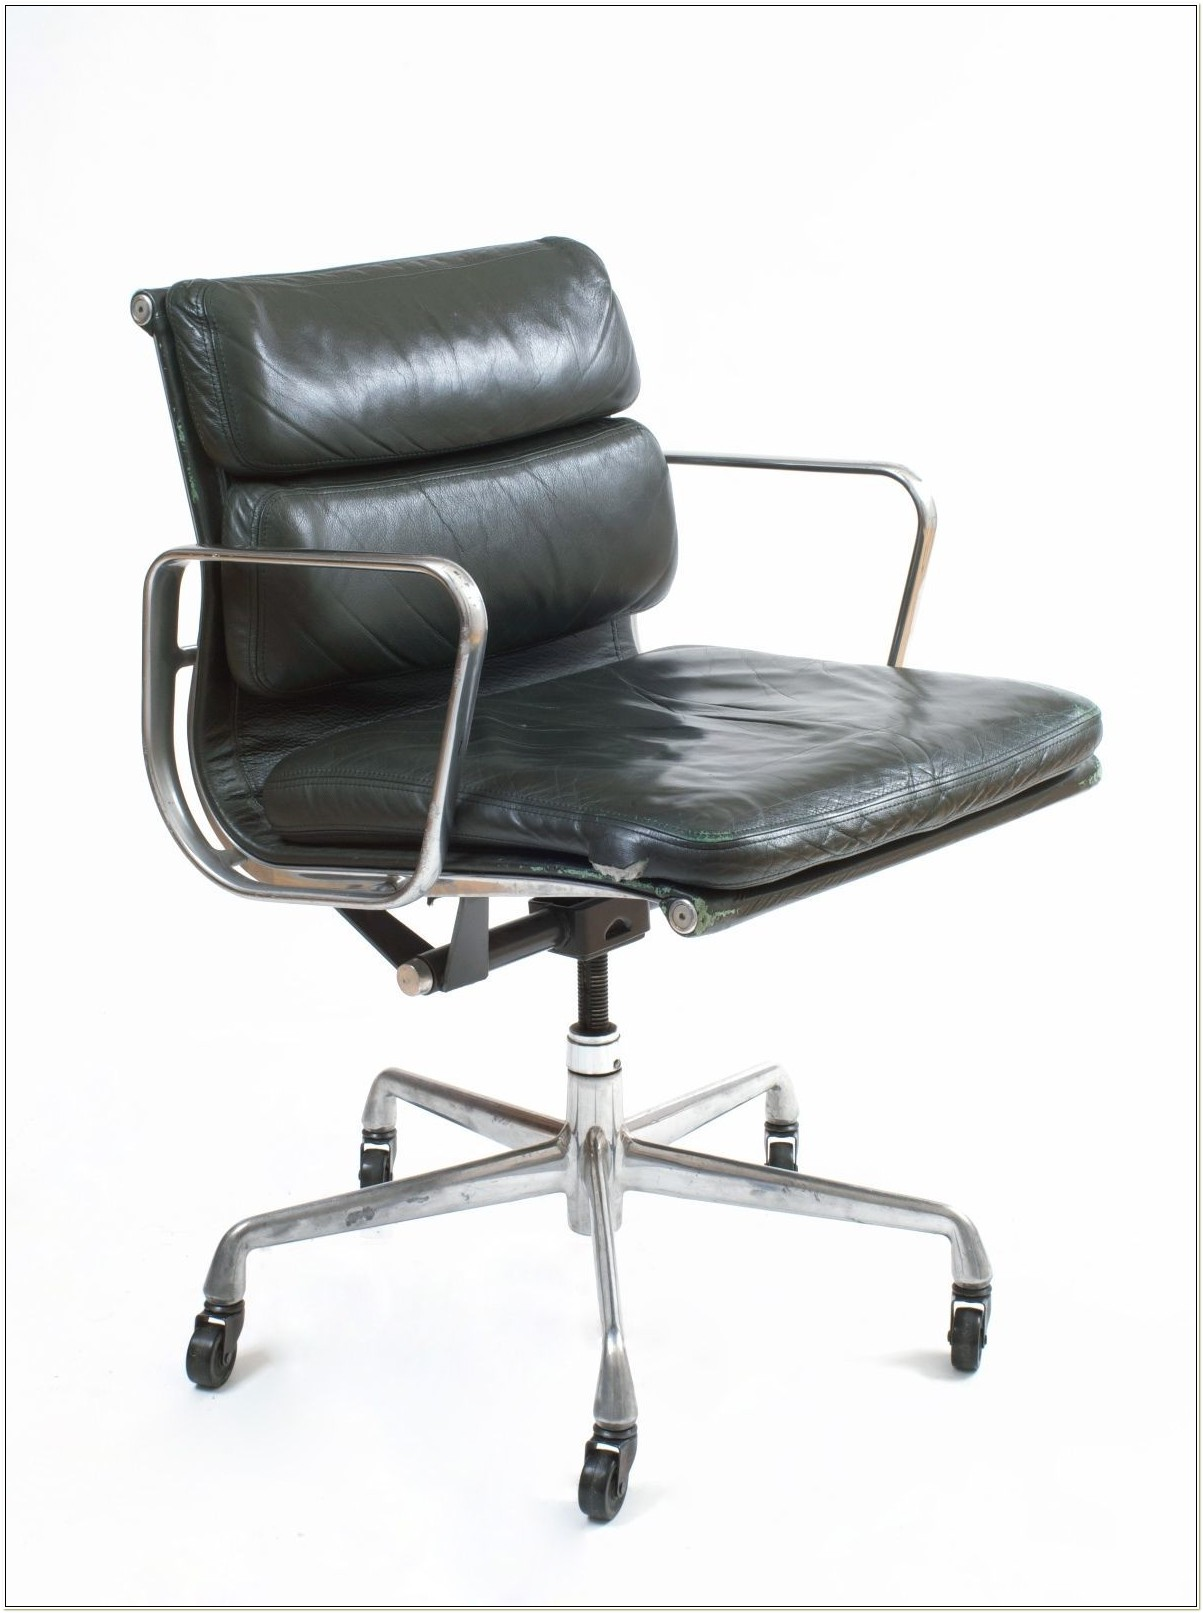 Eames Soft Pad Management Chair Ebay